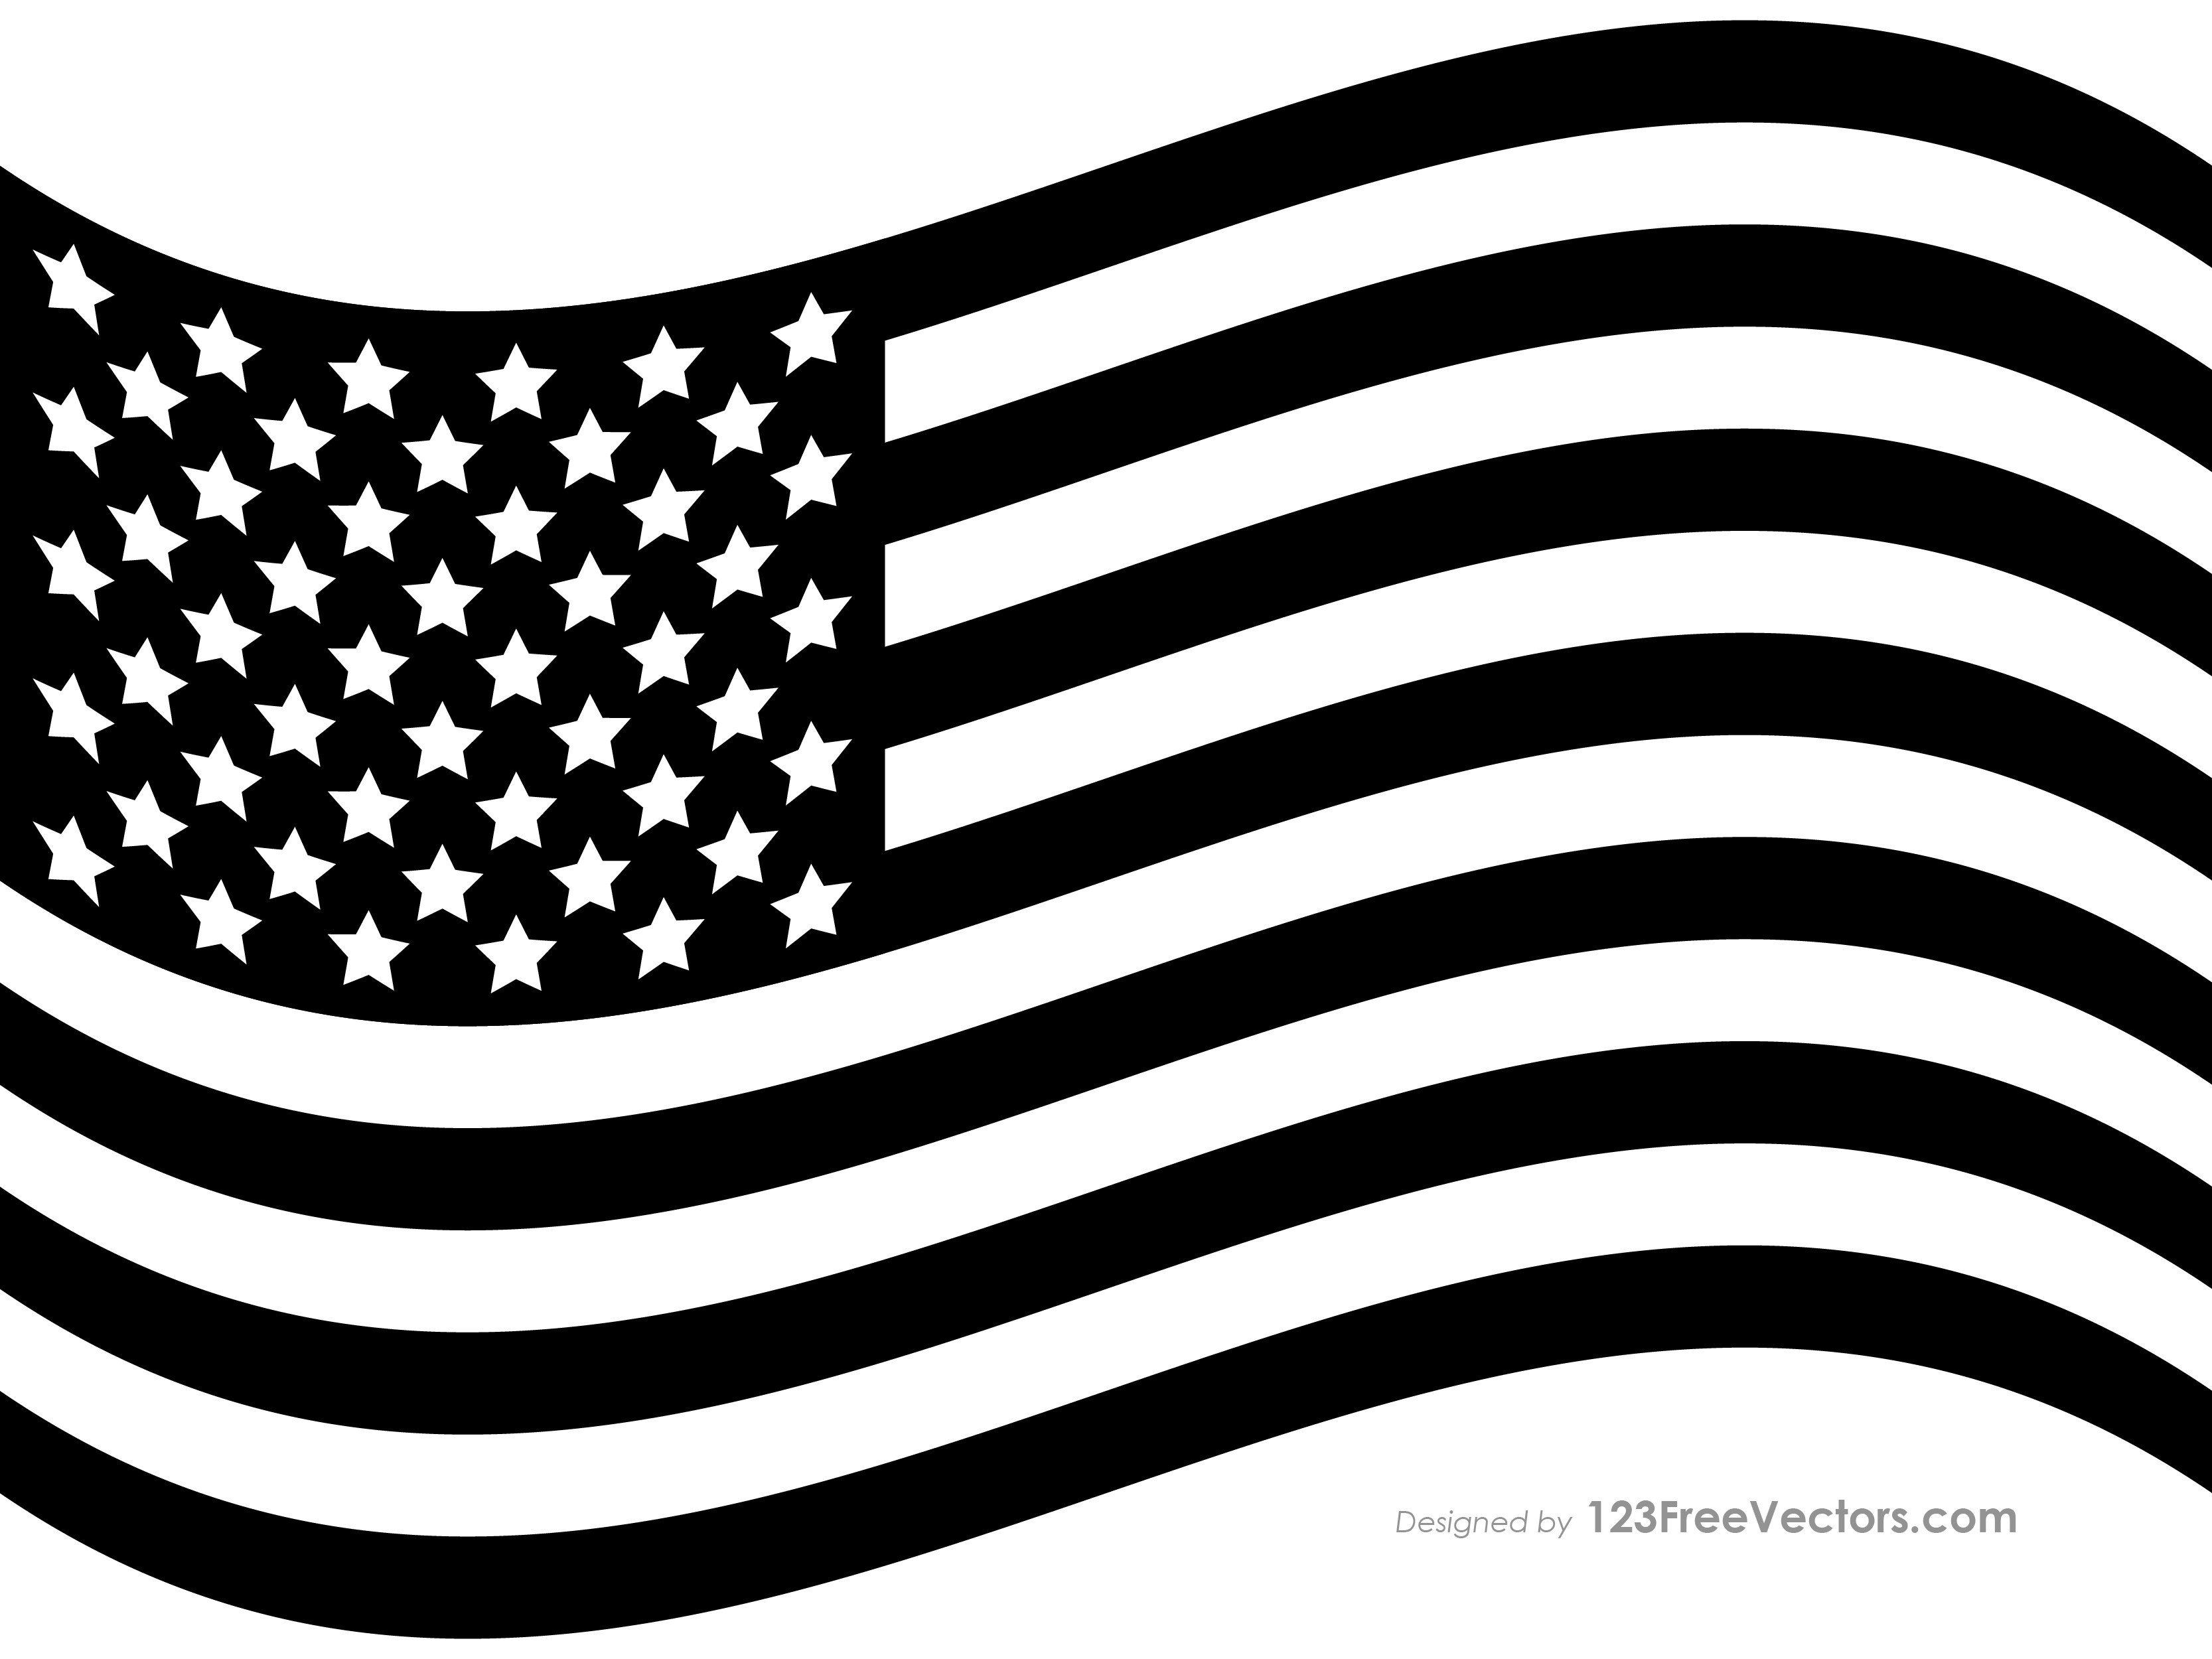 Waving american flag clipart black and white image transparent library 90+ USA Flags Vectors | Download Free Vector Art & Graphics ... image transparent library